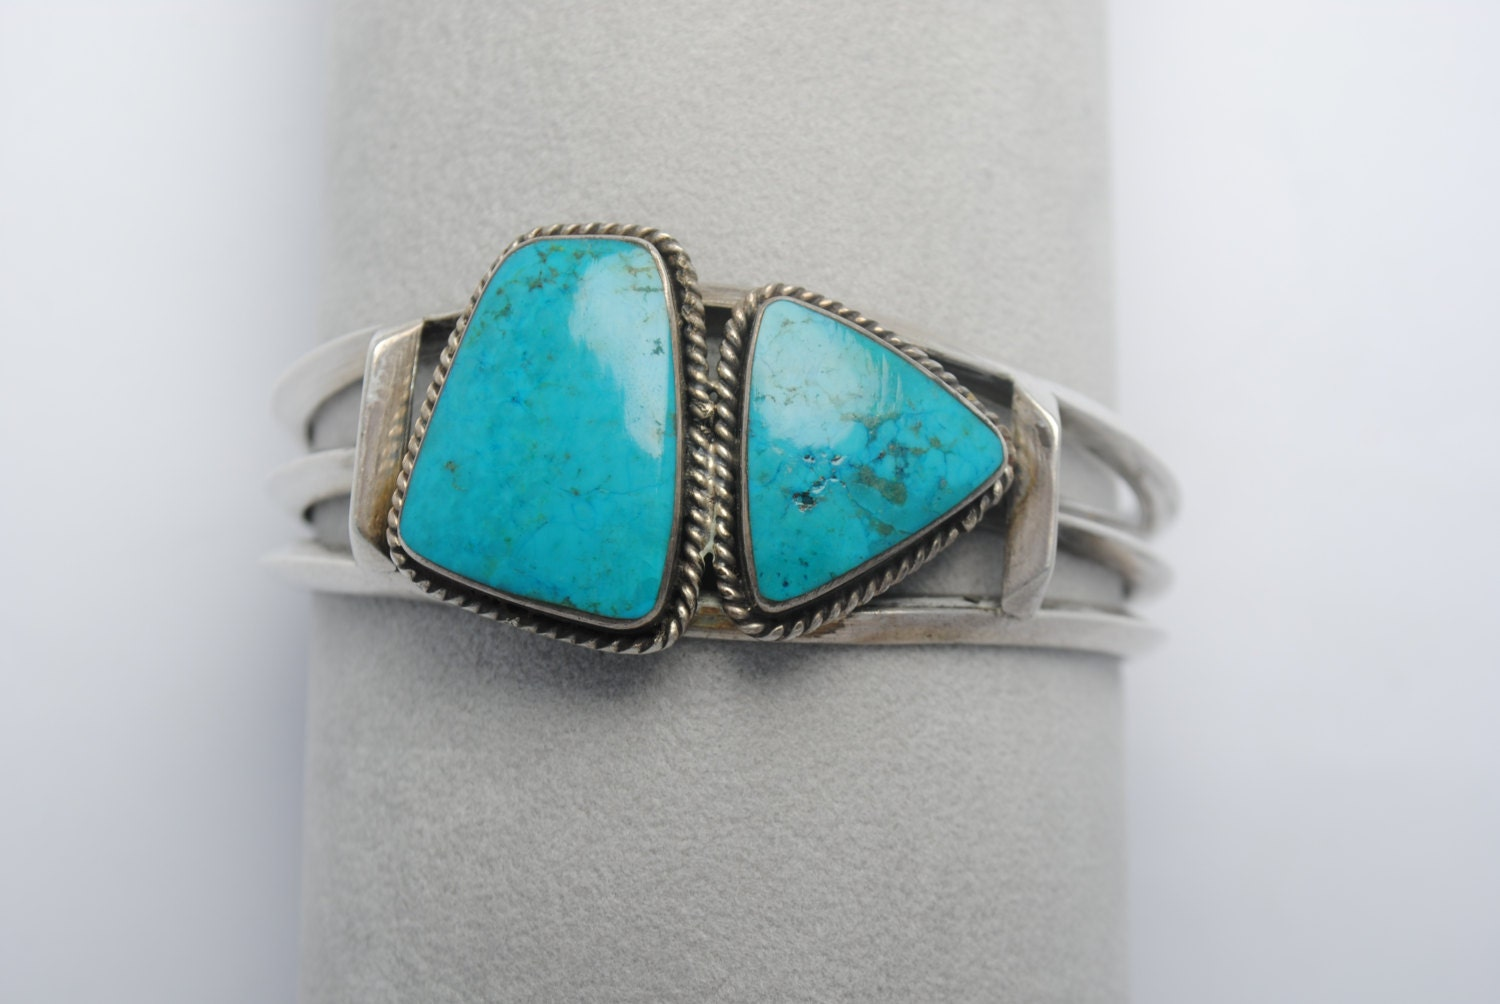 Bijoux American Vintage : Turquoise cuff bracelet native american and sterling silver